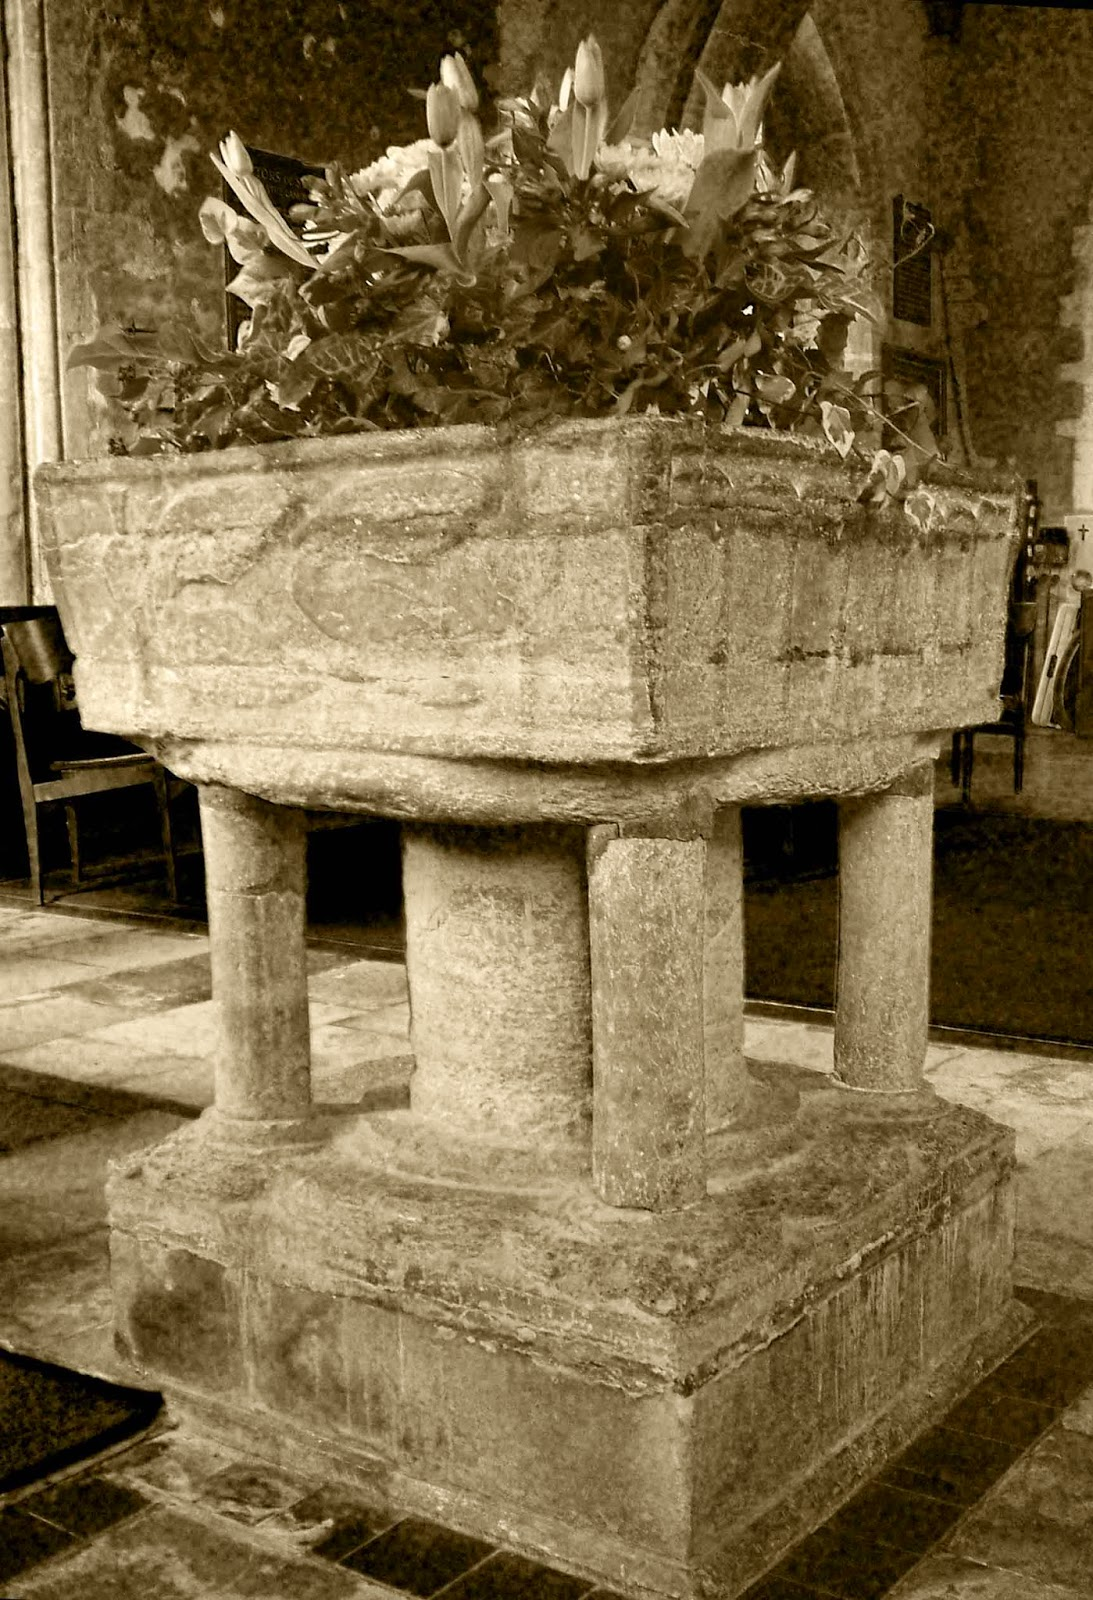 Steeple Langford's amazing Norman font